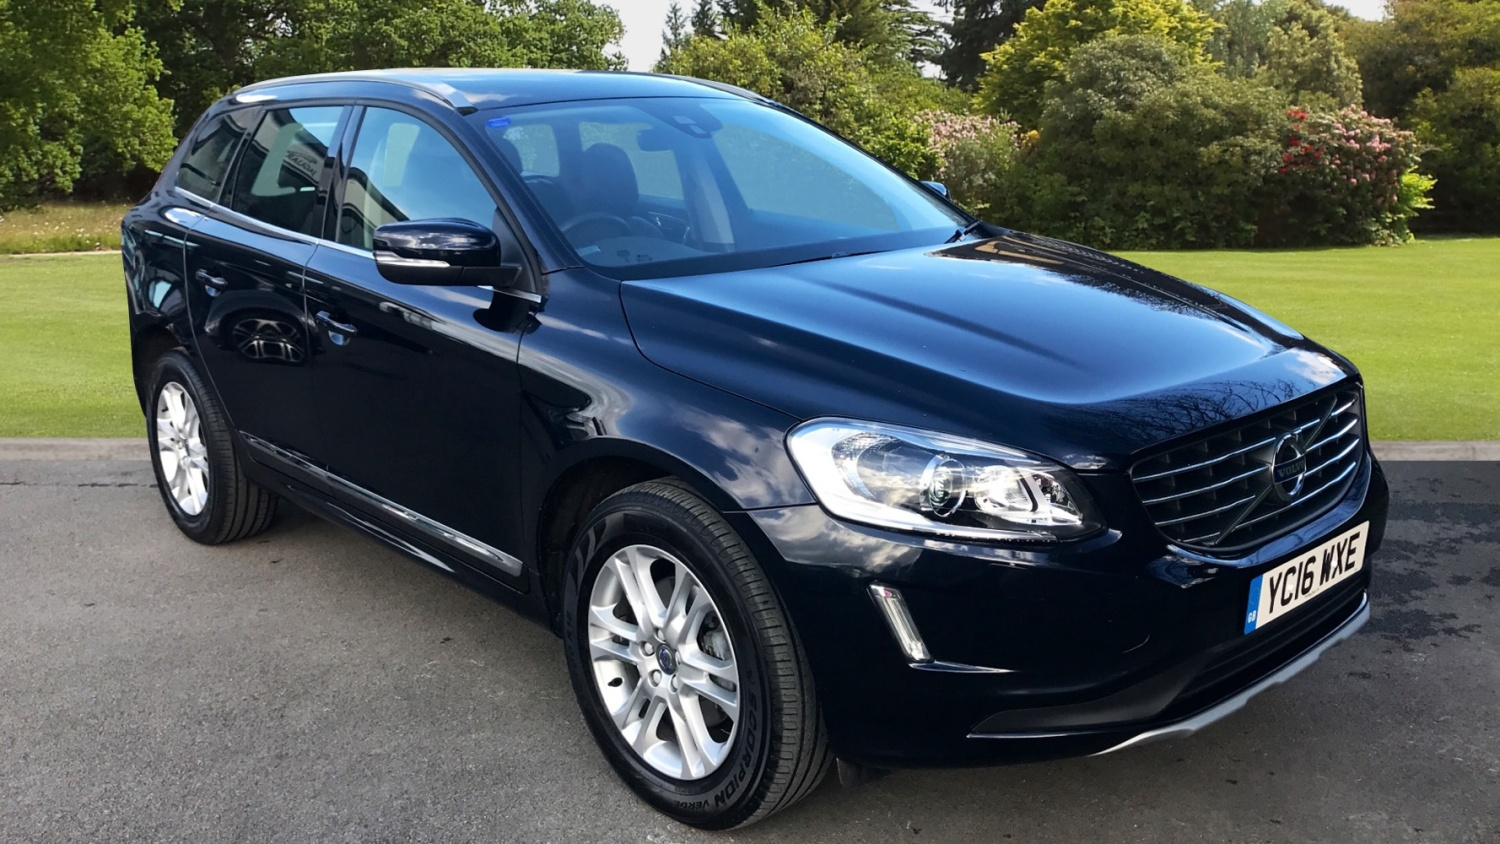 used volvo xc60 d5 220 se lux nav 5dr awd geartronic diesel estate for sale farnell land rover. Black Bedroom Furniture Sets. Home Design Ideas